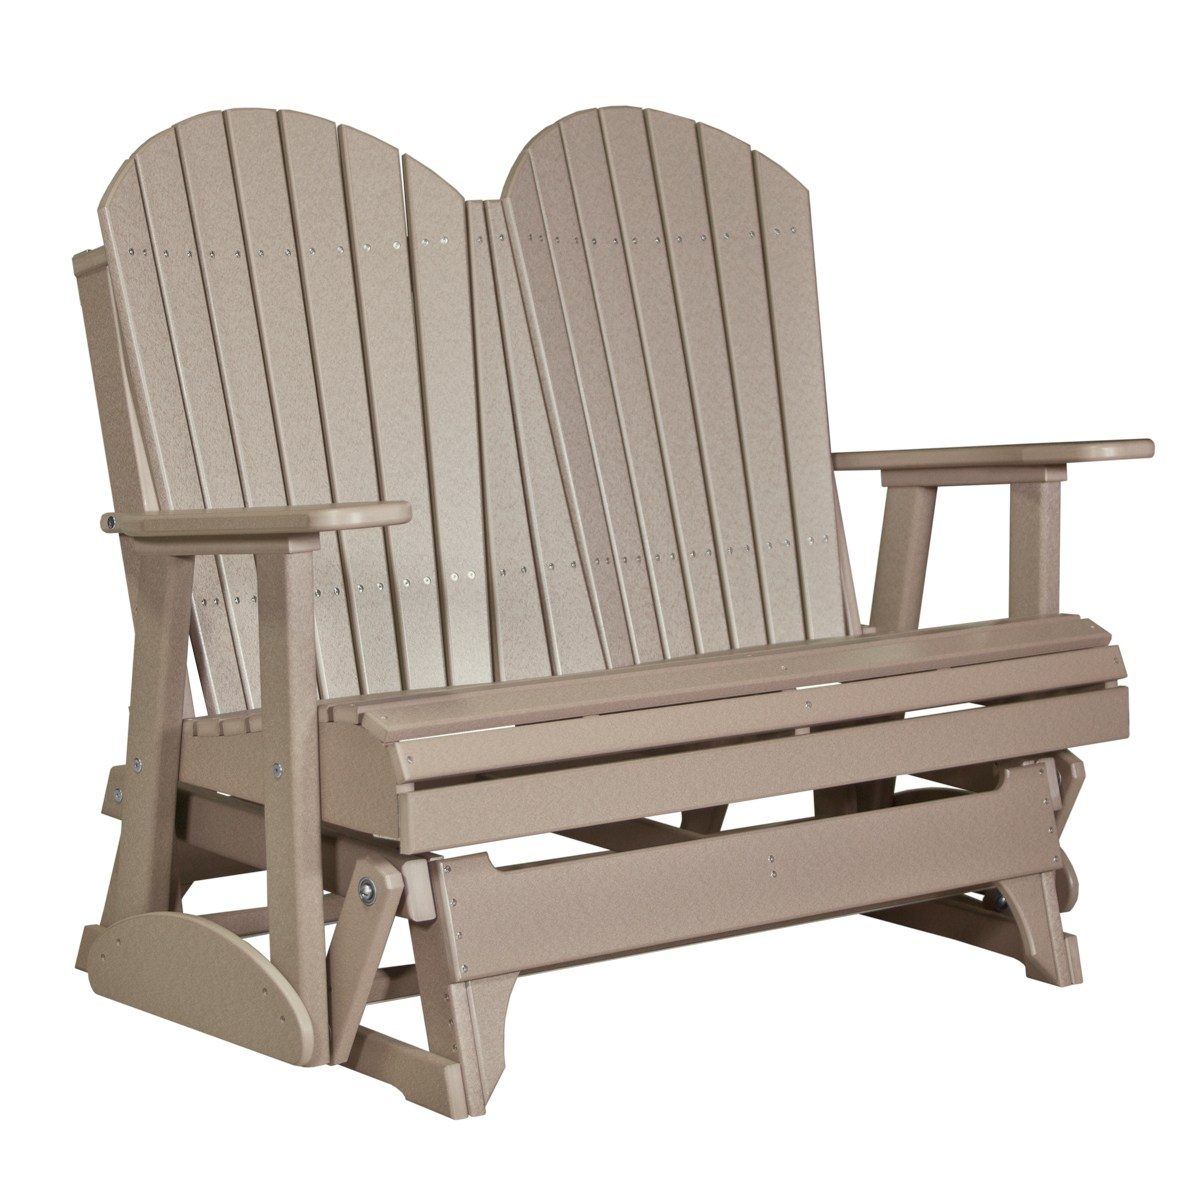 double rocking adirondack chair plans wooden lawn chairs glider recycled patio fine oak things